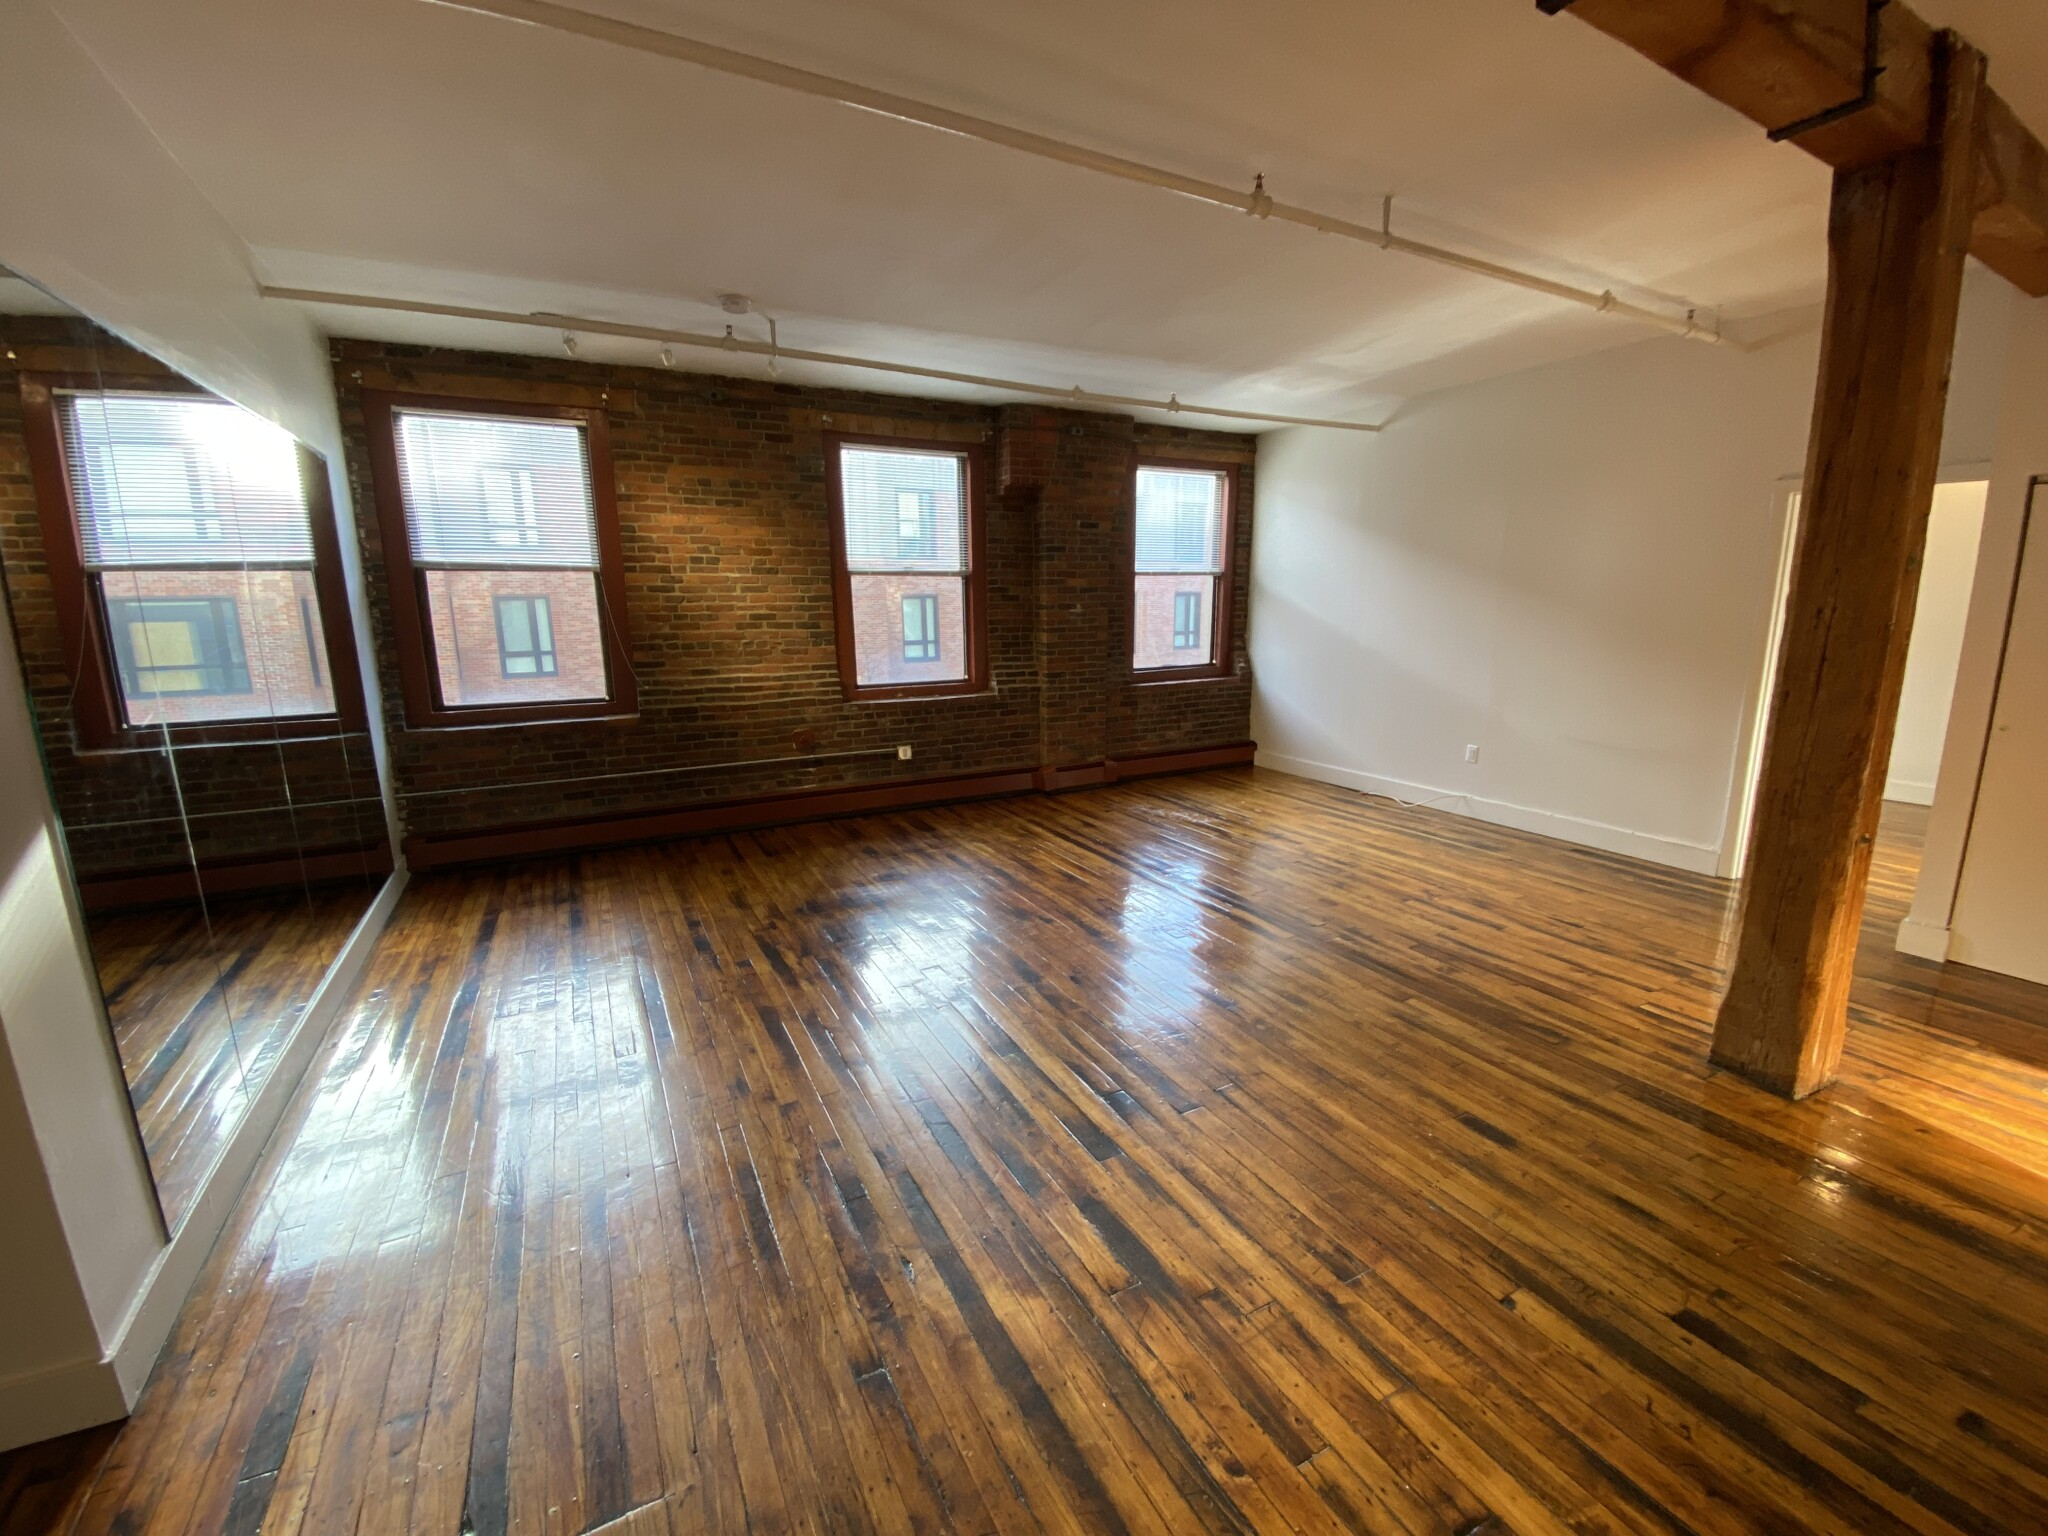 2 Beds, 1 Bath apartment in Boston, South End for $3,700